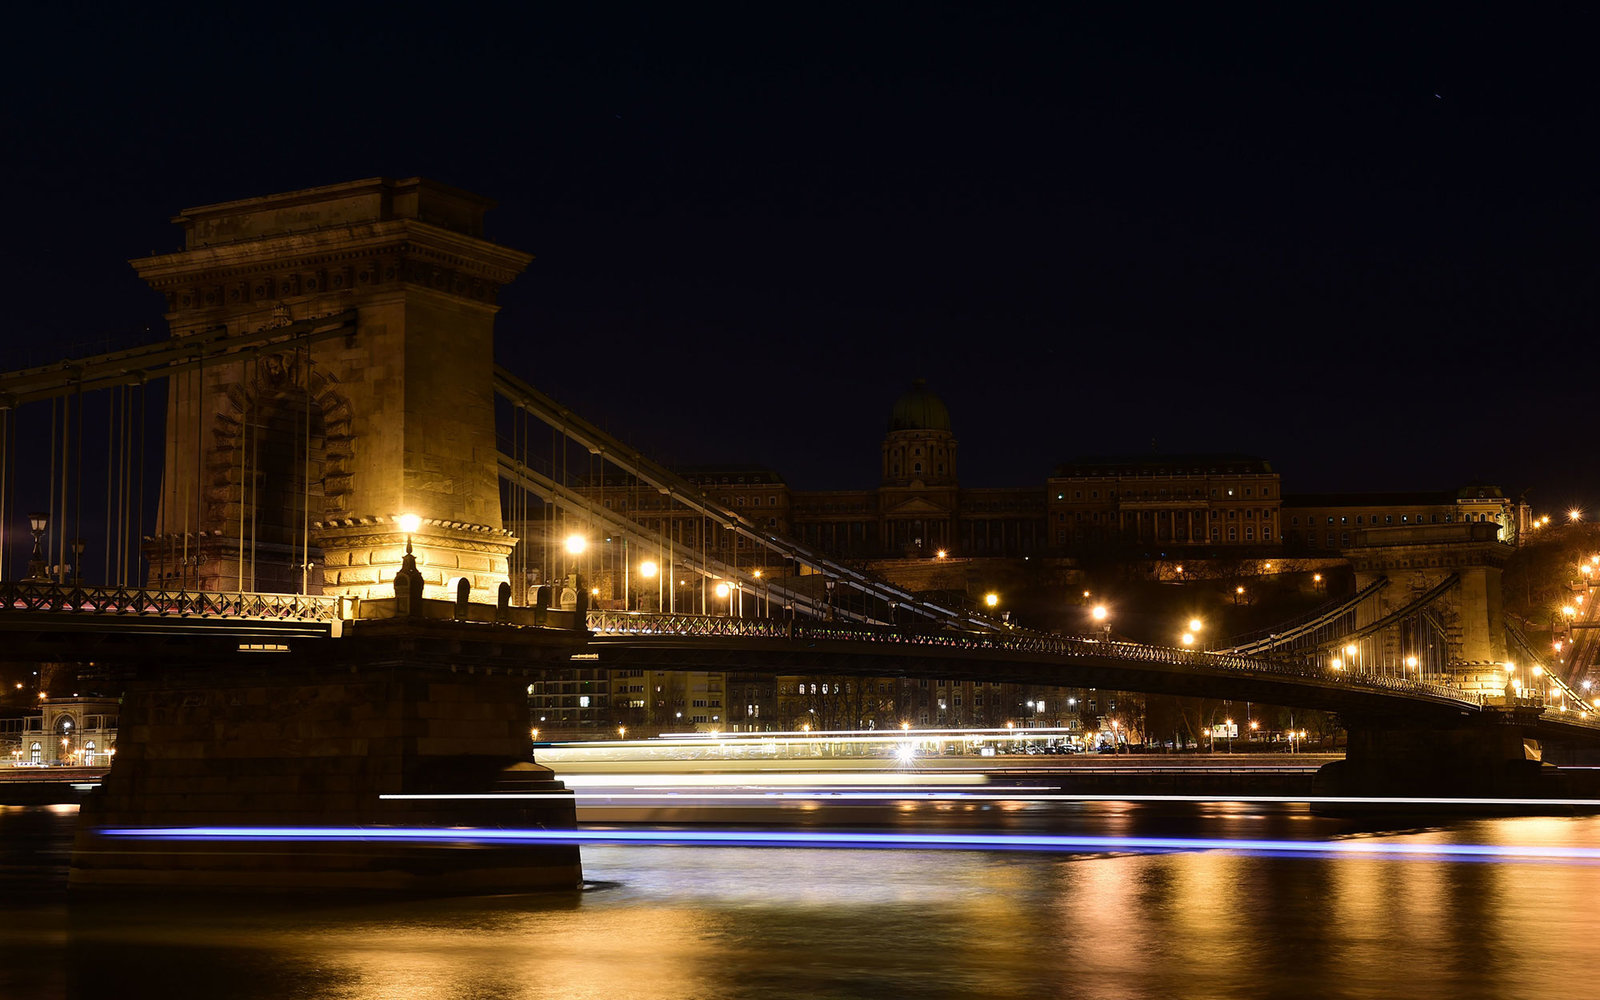 Picture taken on March 19, 2016 shows the oldest Hungarian bridge, the 'Chain Bridge' with the Buda Castle on top of the Castle Hill of Budapest downtown after the city lights were switched off to mark the annual Earth Hour event.